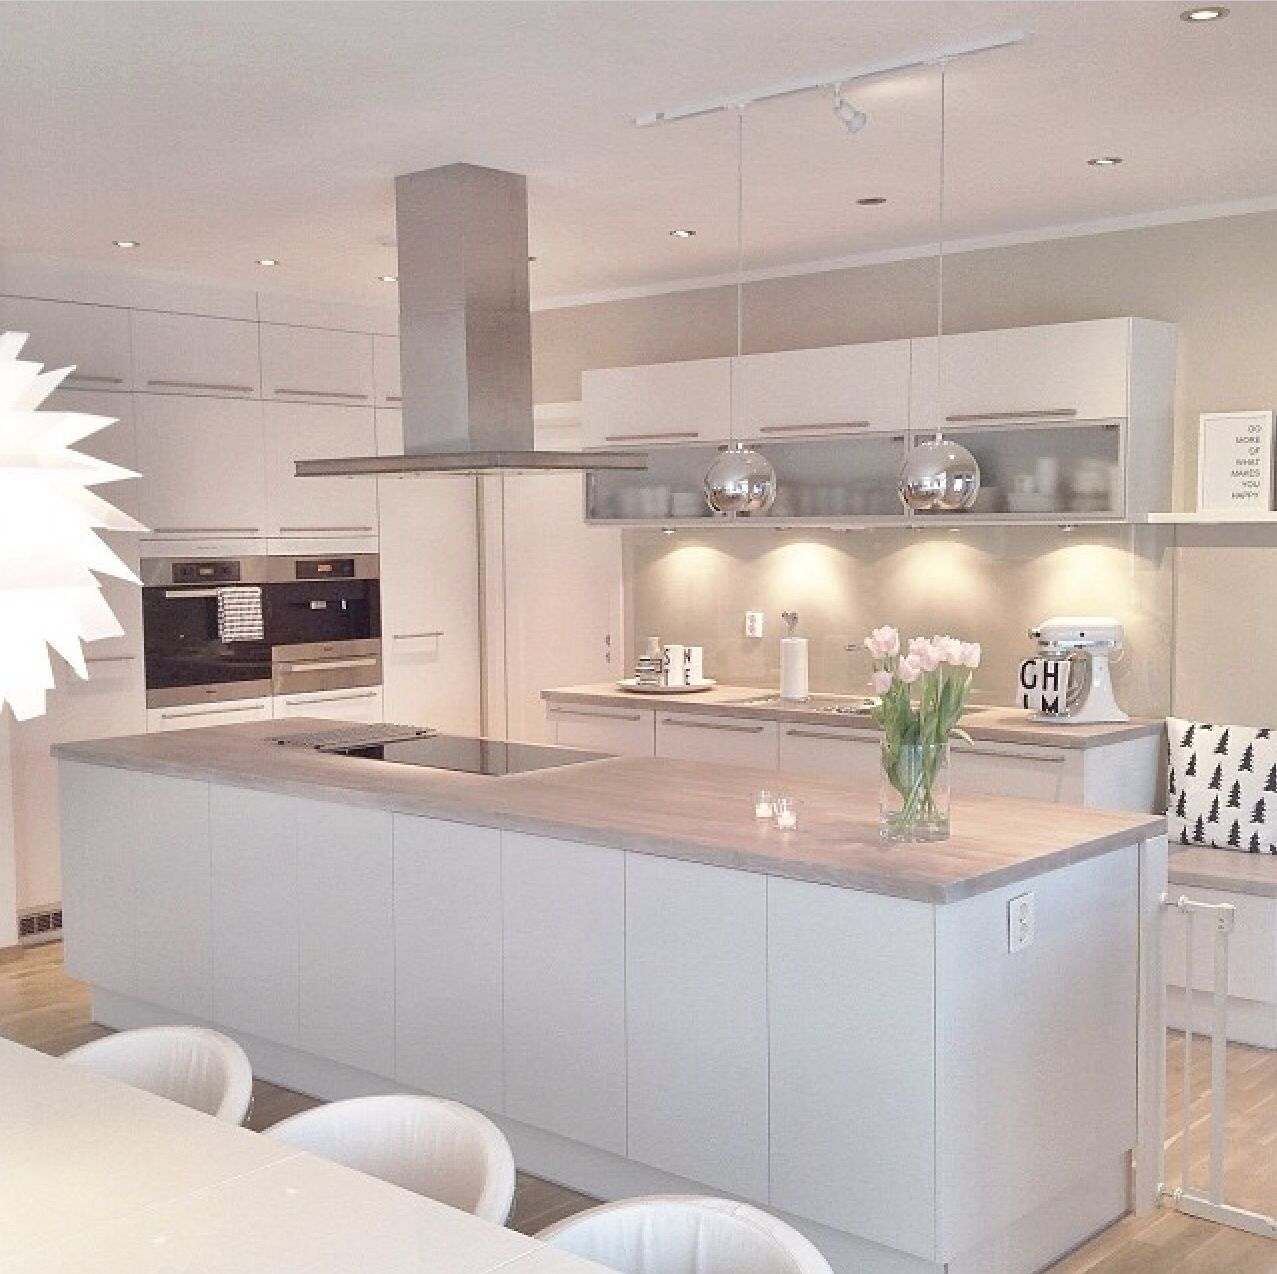 Love Combination Of Clean Lines With Grey And White Plus Wooden Floors Modern But Warm Peaceful Do Not Like Oven Vent Too Square Silver Cold